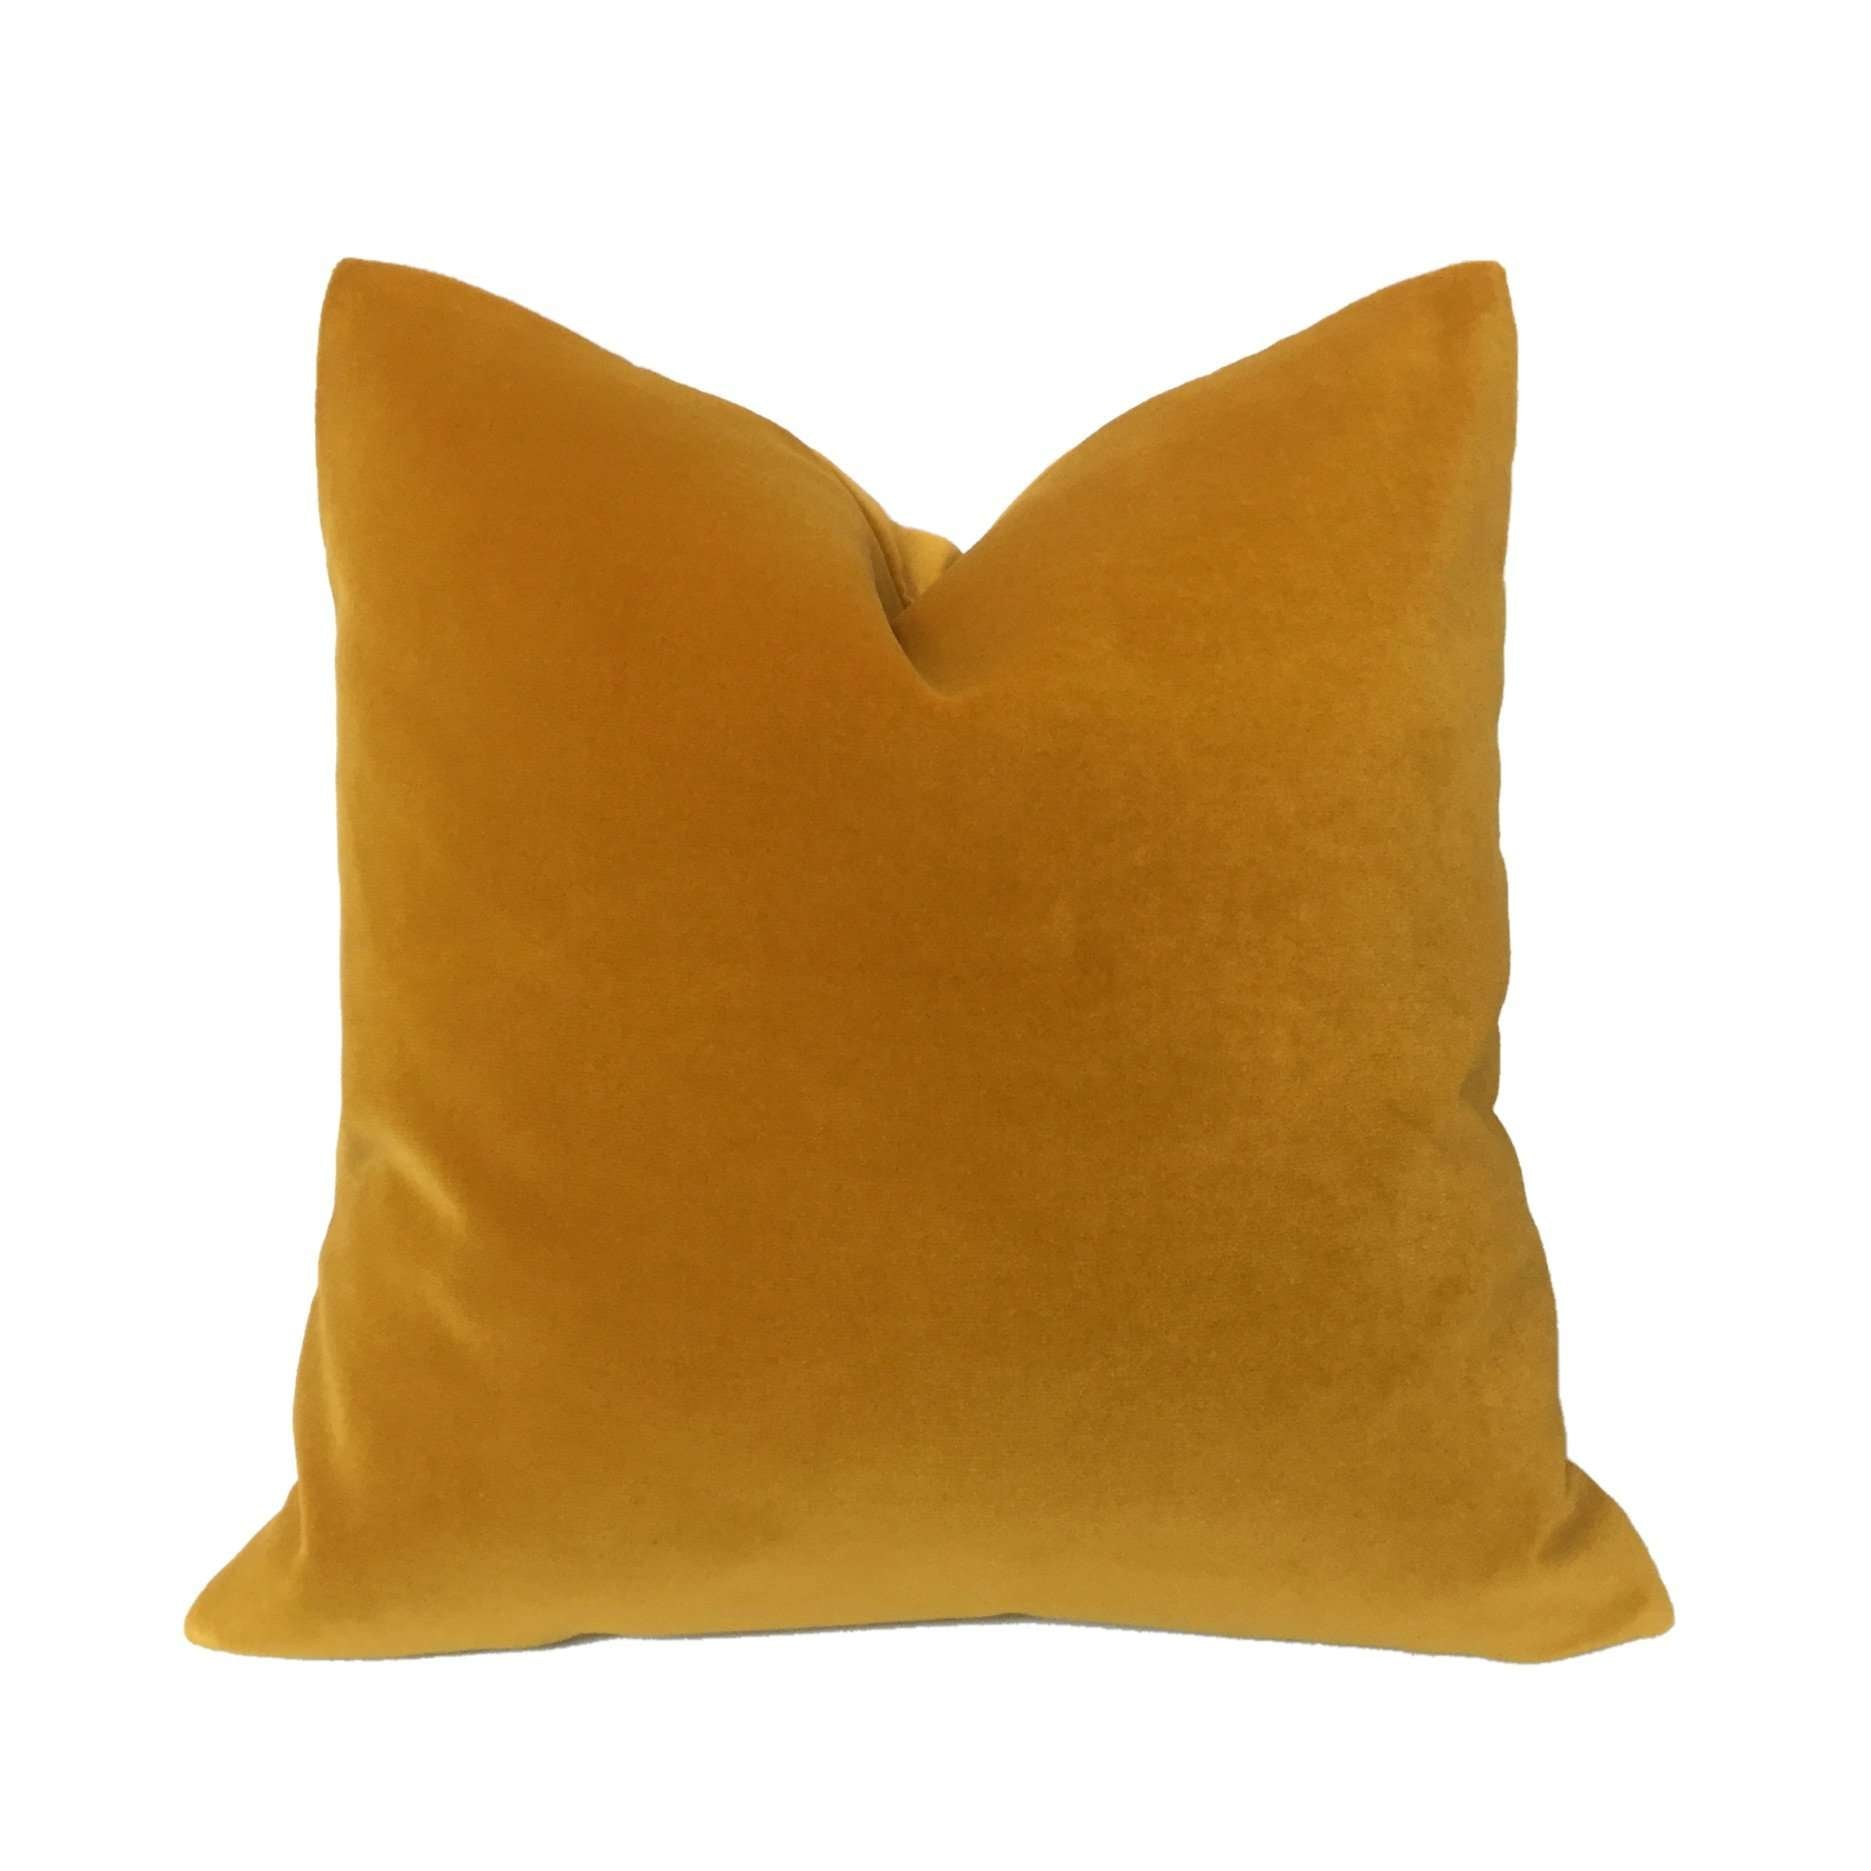 Robert Allen Gold 14 Karat Exquisite Velvet Pillow